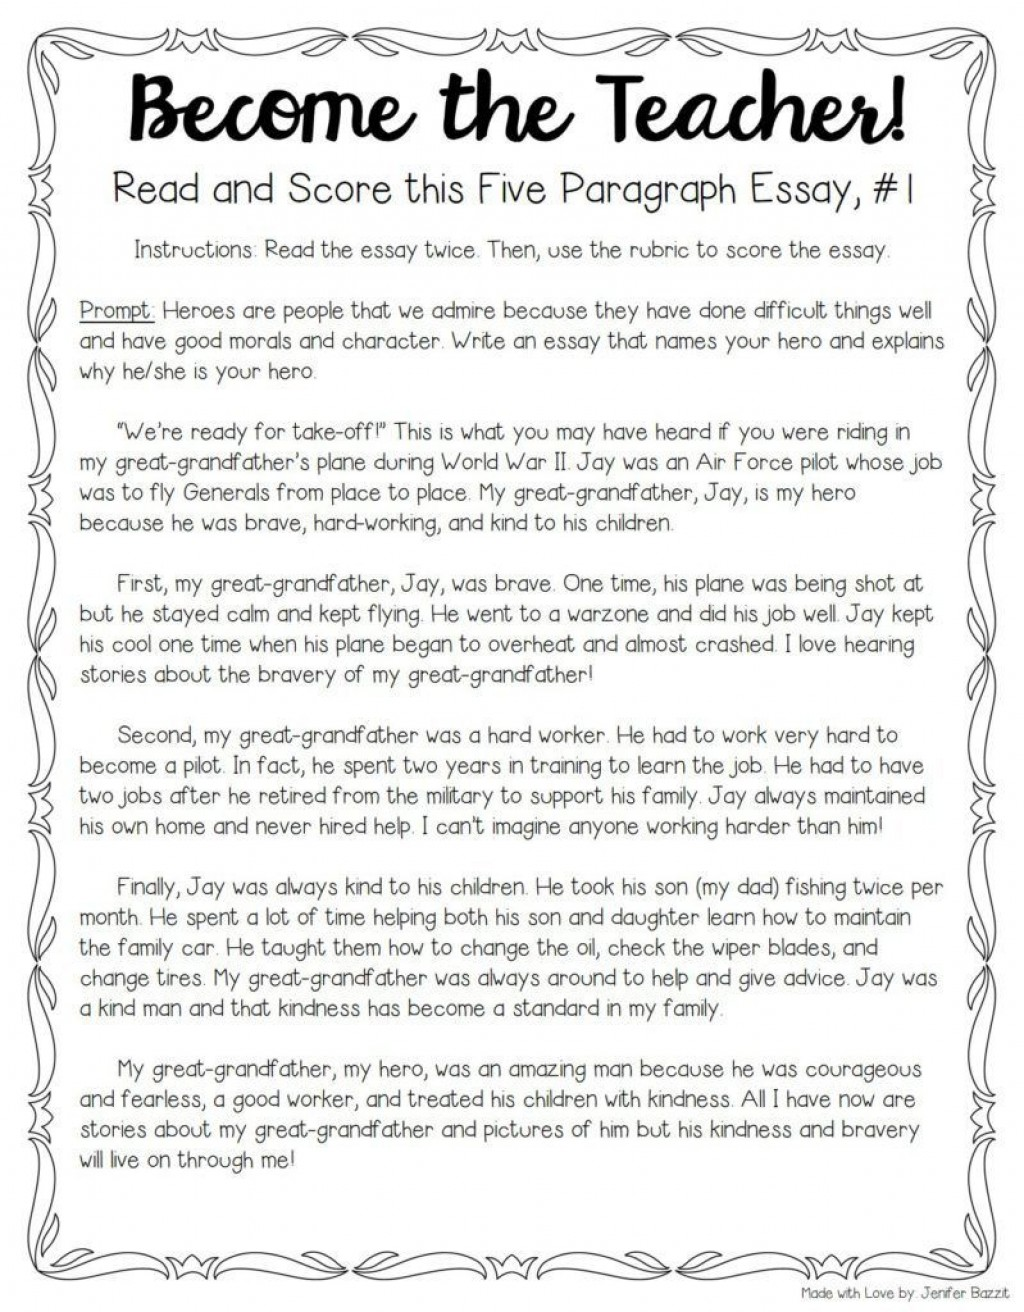 001 Essay Example Teaching Unique Writing 5th Grade To Esl Students High School Large